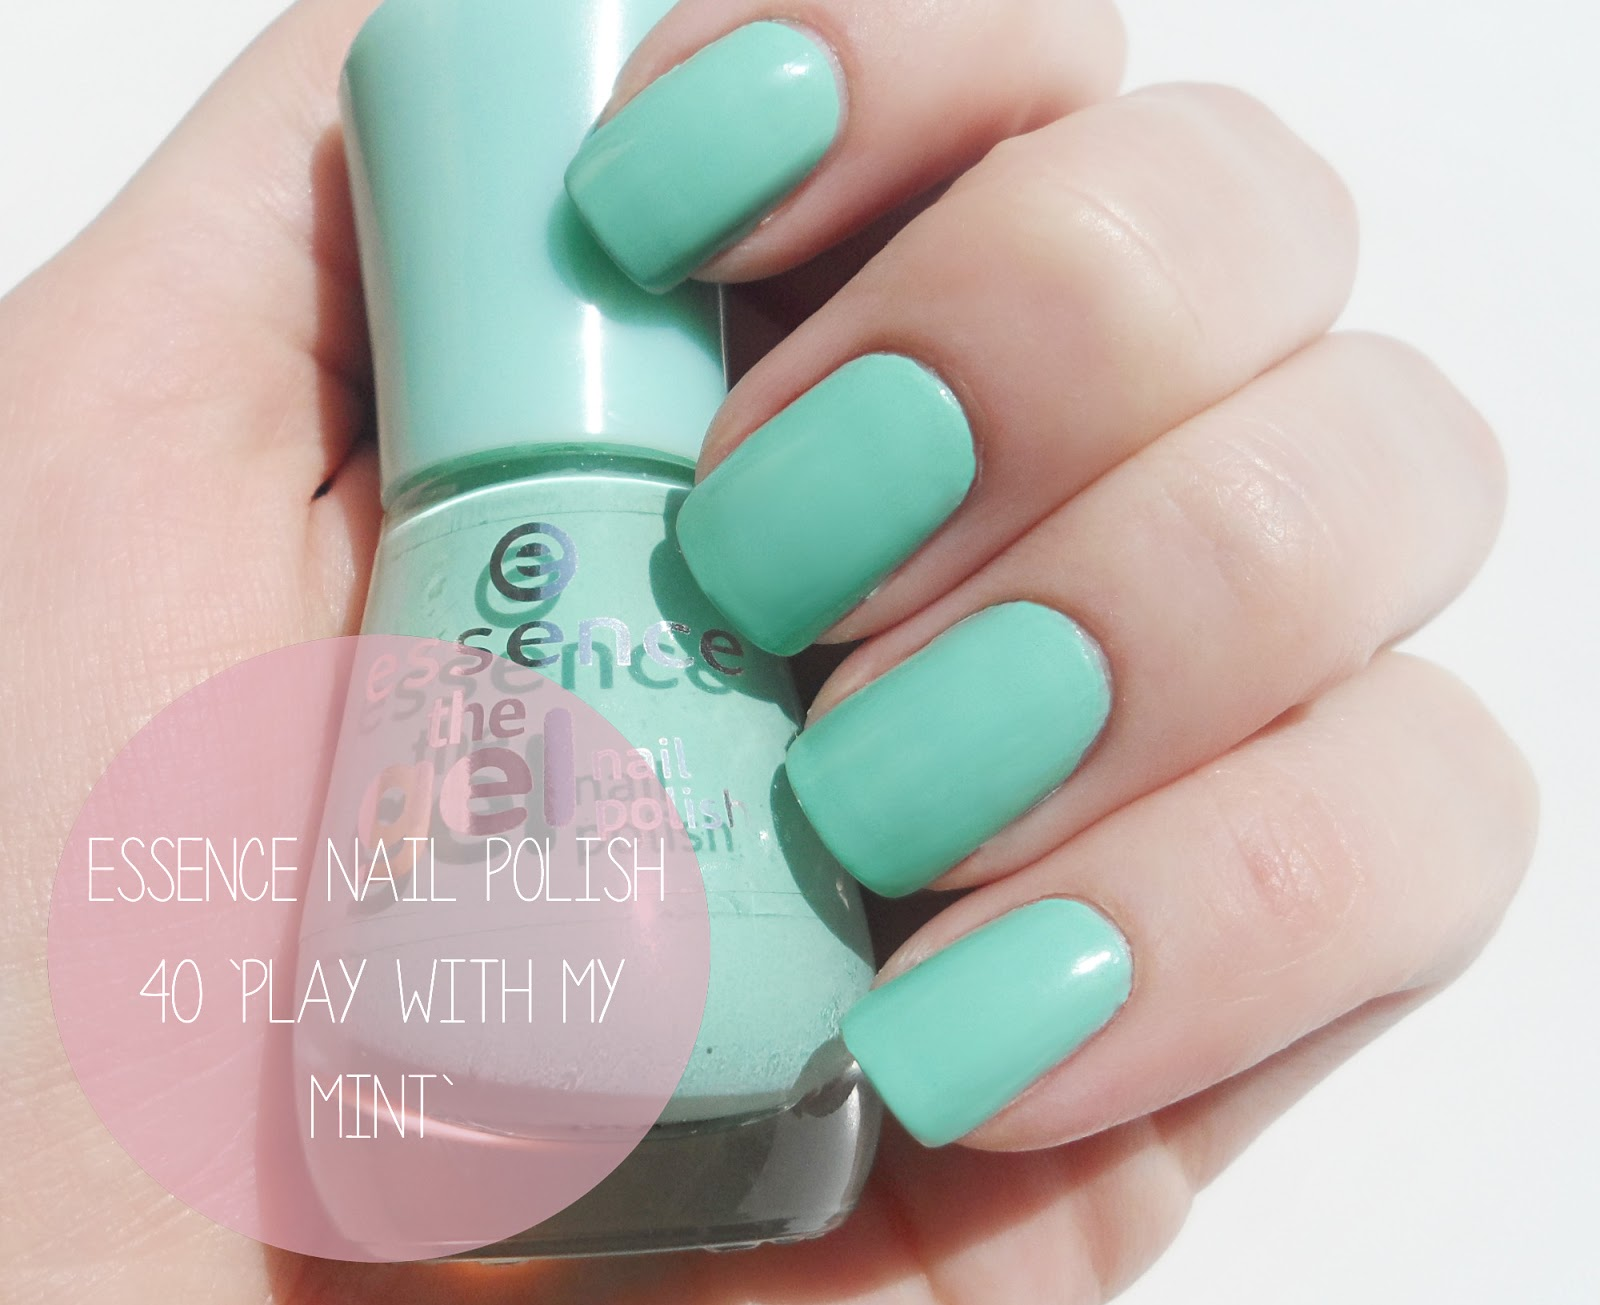 Essence Gel Nail Polish 39play With My Mint39 Review